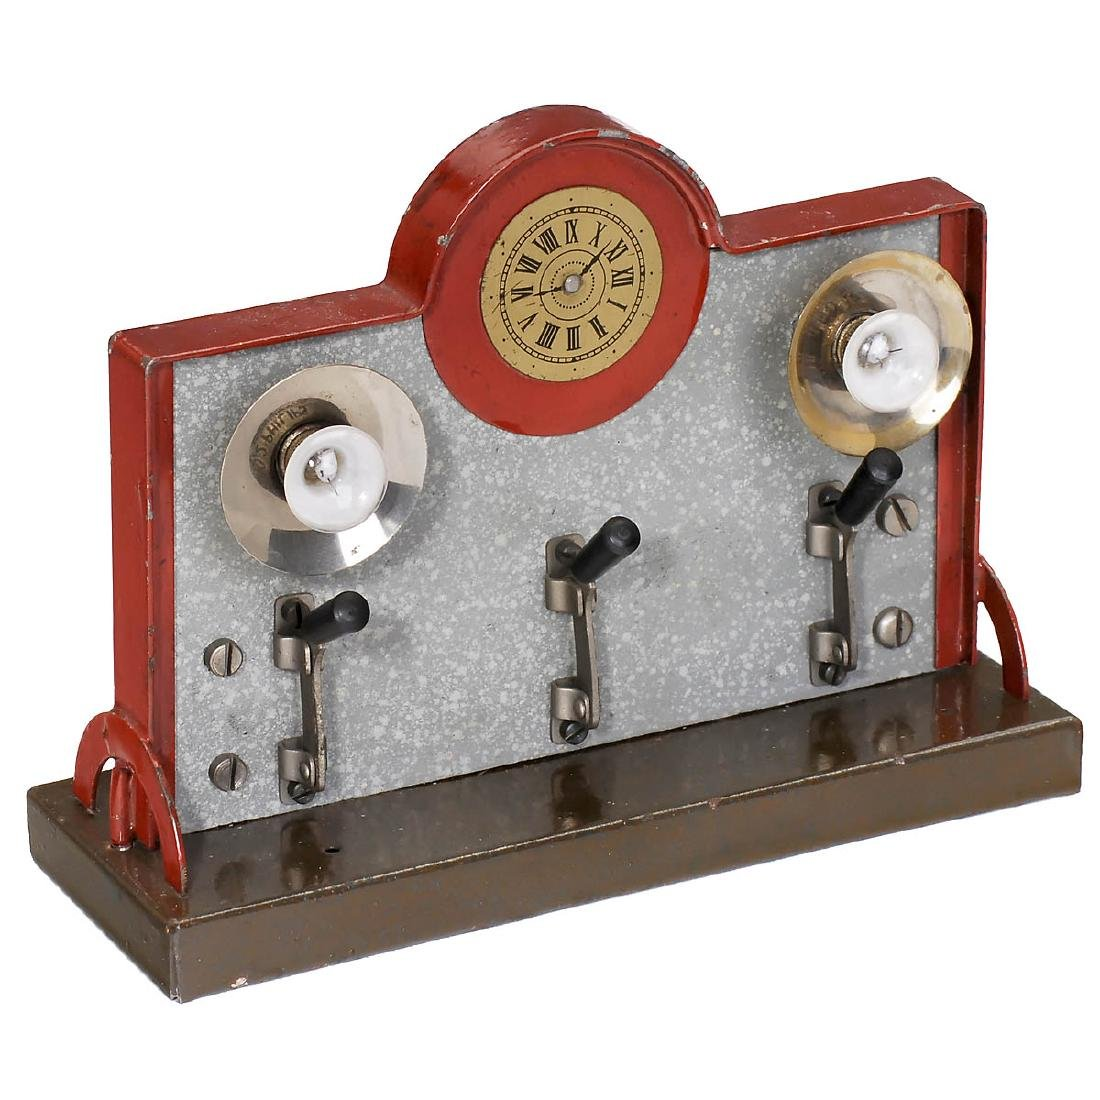 Märklin Switchboard No. 3632, c. 1925